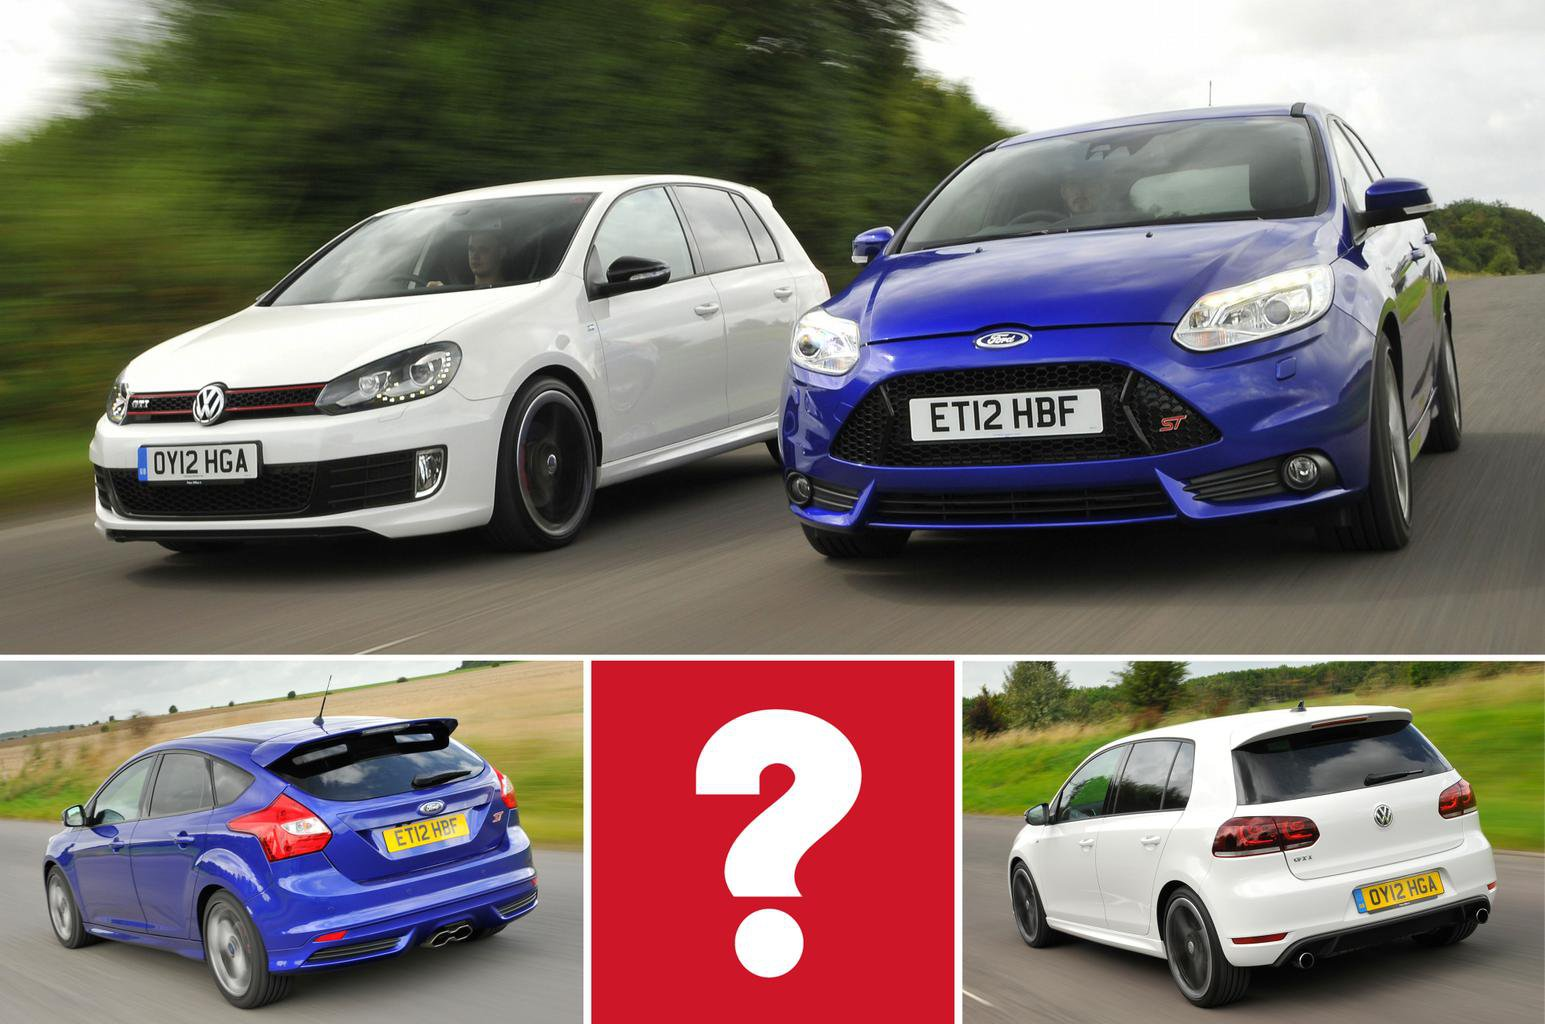 Focus St Vs Gti >> Used Test Hot Hatches Ford Focus St Vs Volkswagen Golf